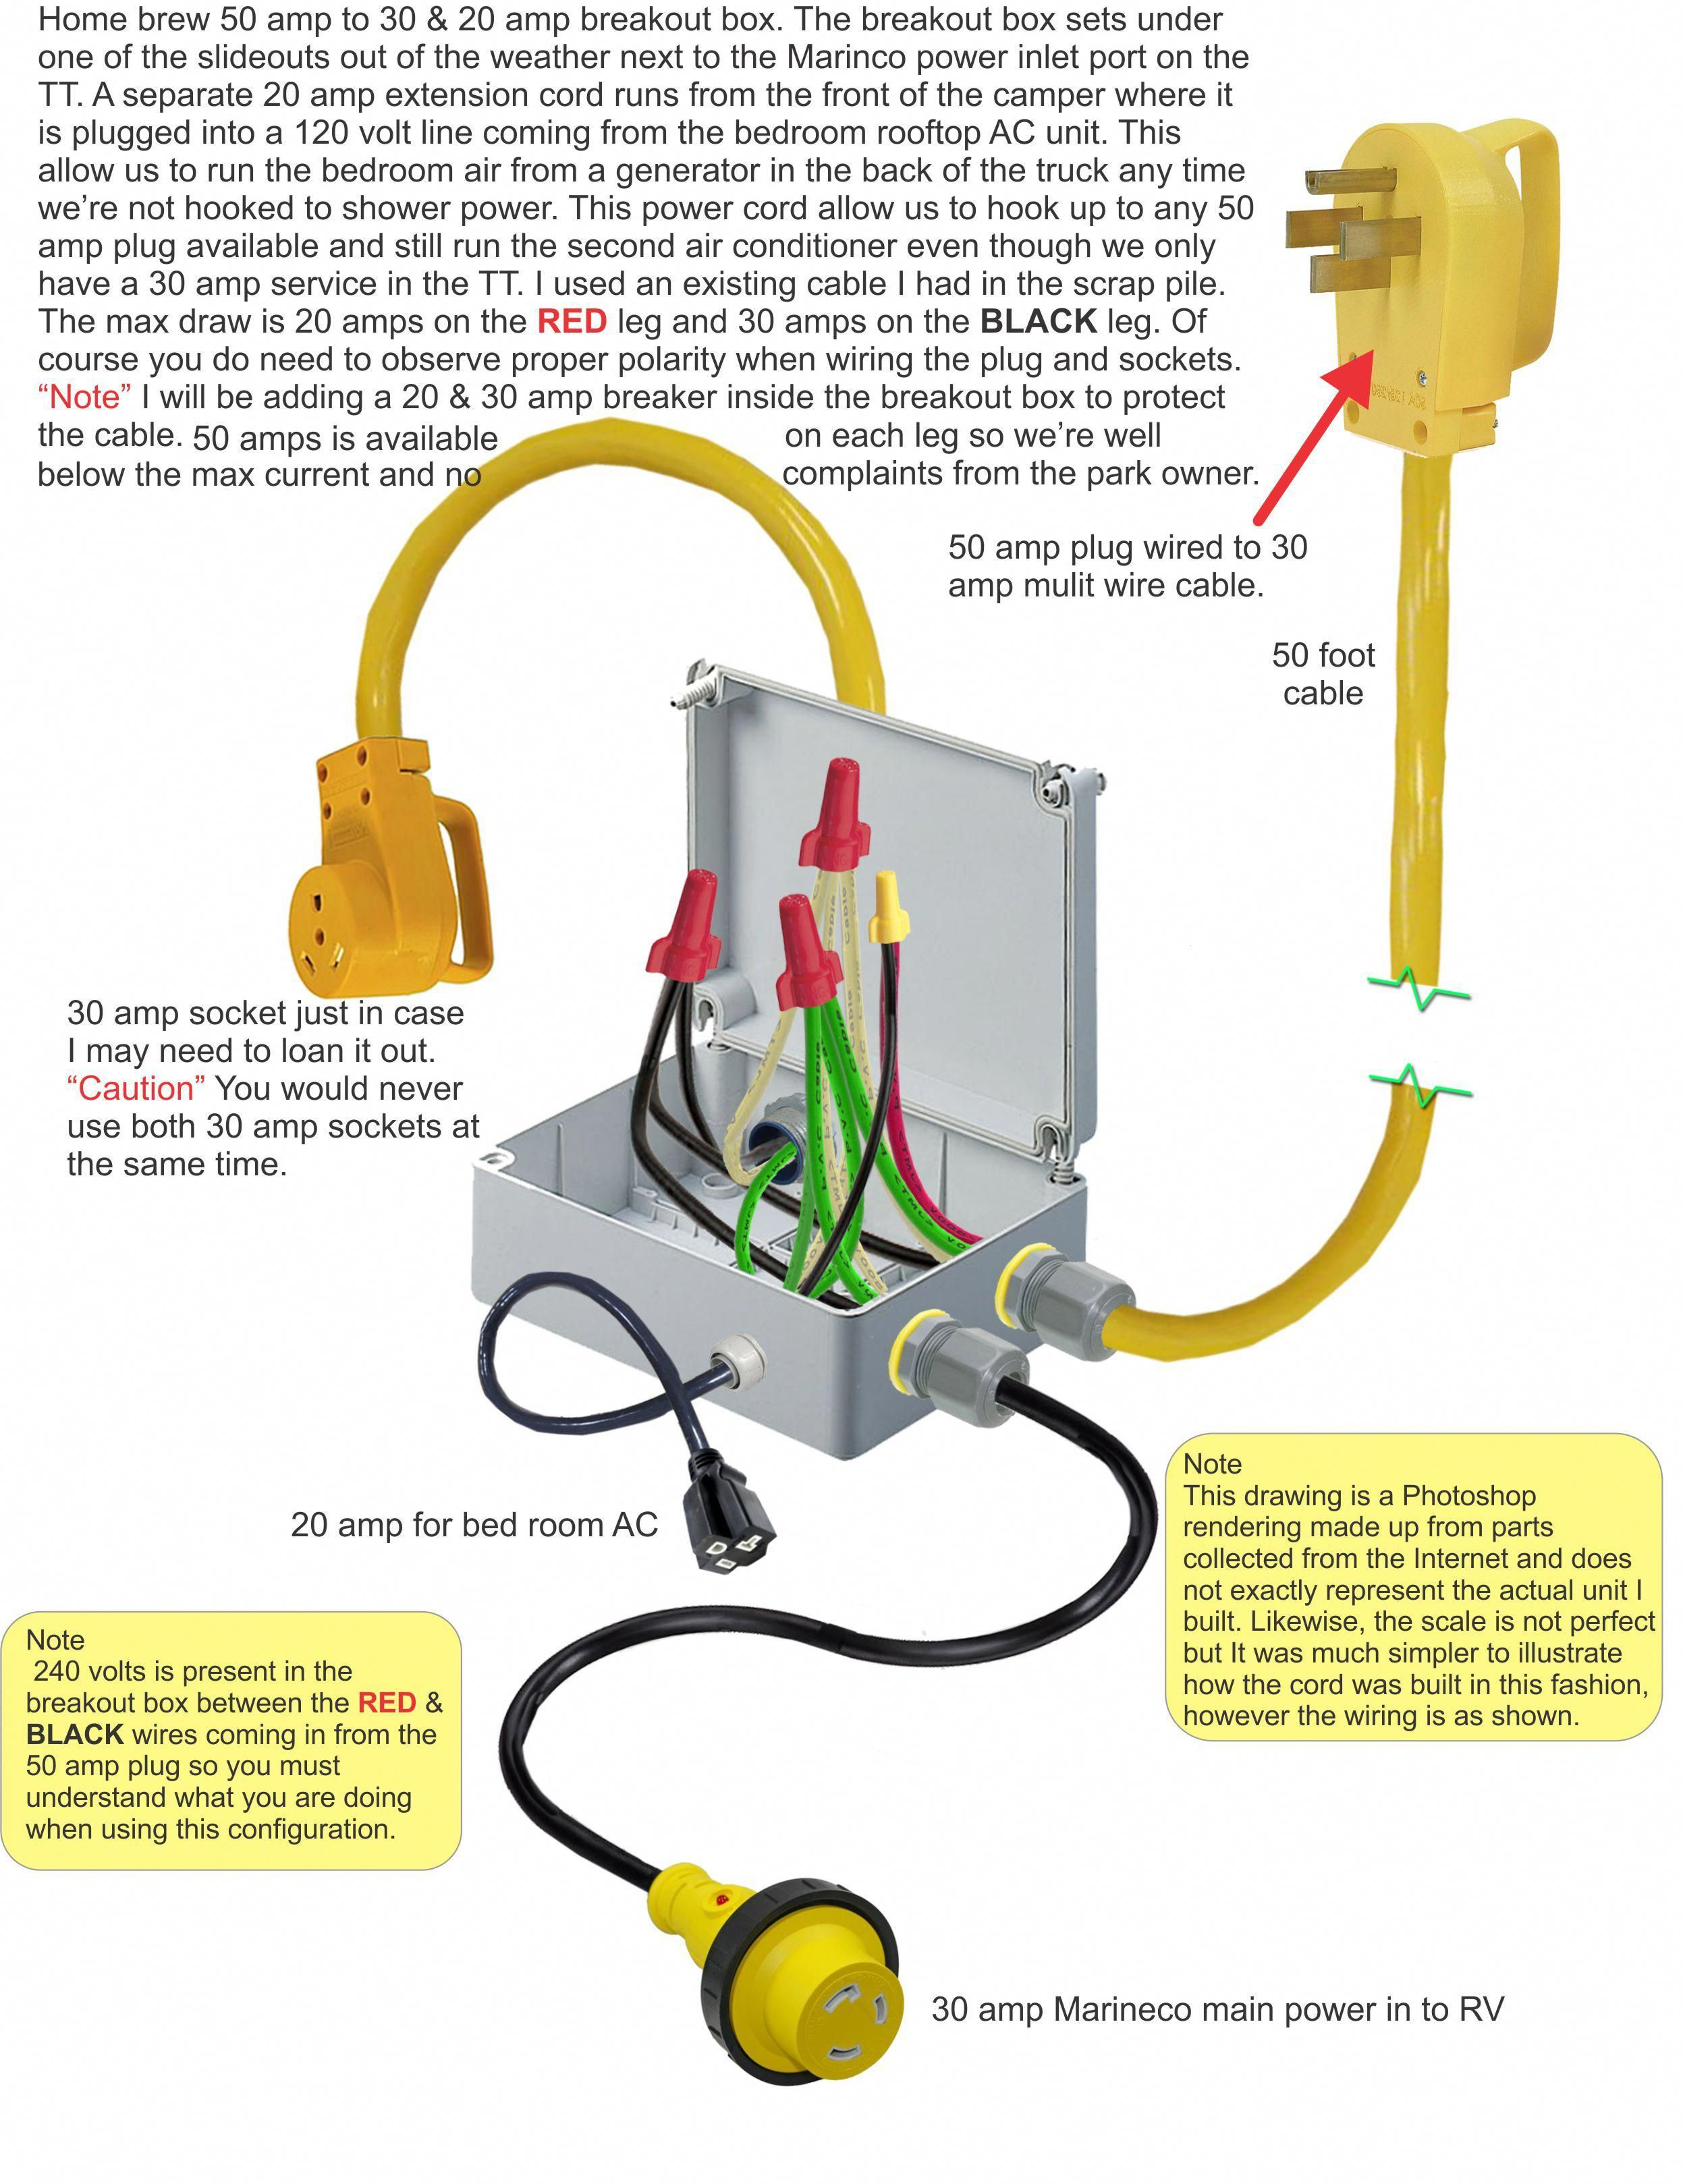 50 Amp Rv Plug Wiring Diagram To View Further For This Article Visit The Image Link Campingtips Rv Camping Checklist Camping Advice Power Inlets